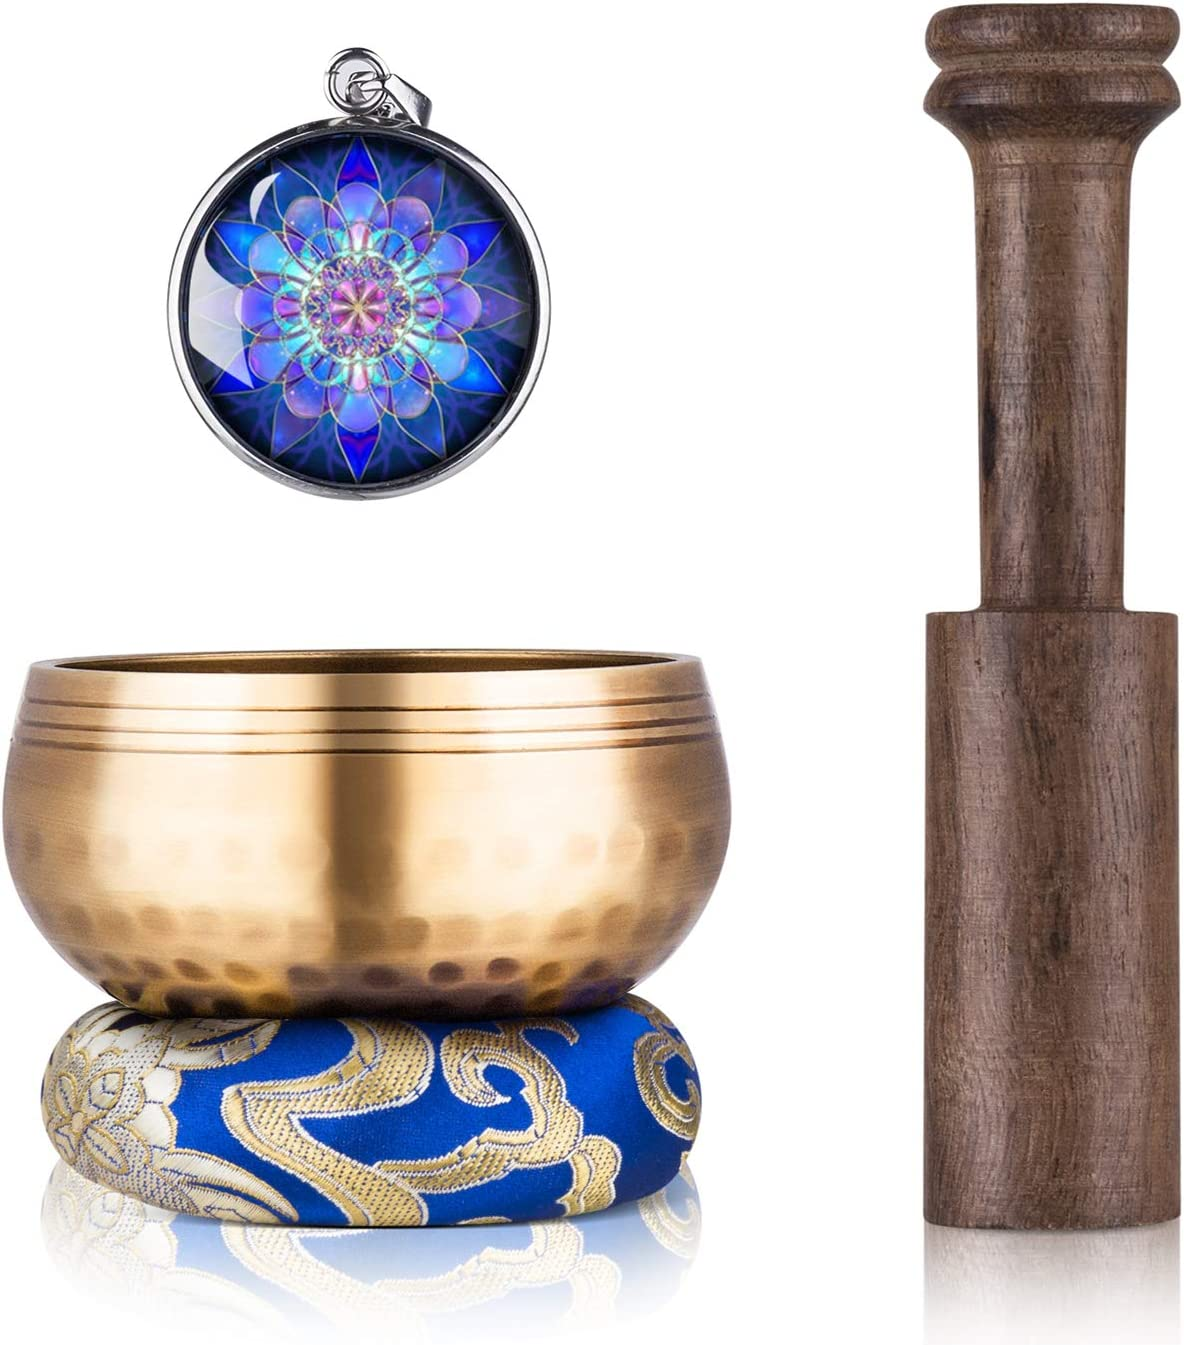 Tibetan Singing Bowl Set - Sing Bowl Unique Gift Helpful for Meditation, Yoga, Relaxation, Chakra Healing, Prayer and Mindfulness (Golden)